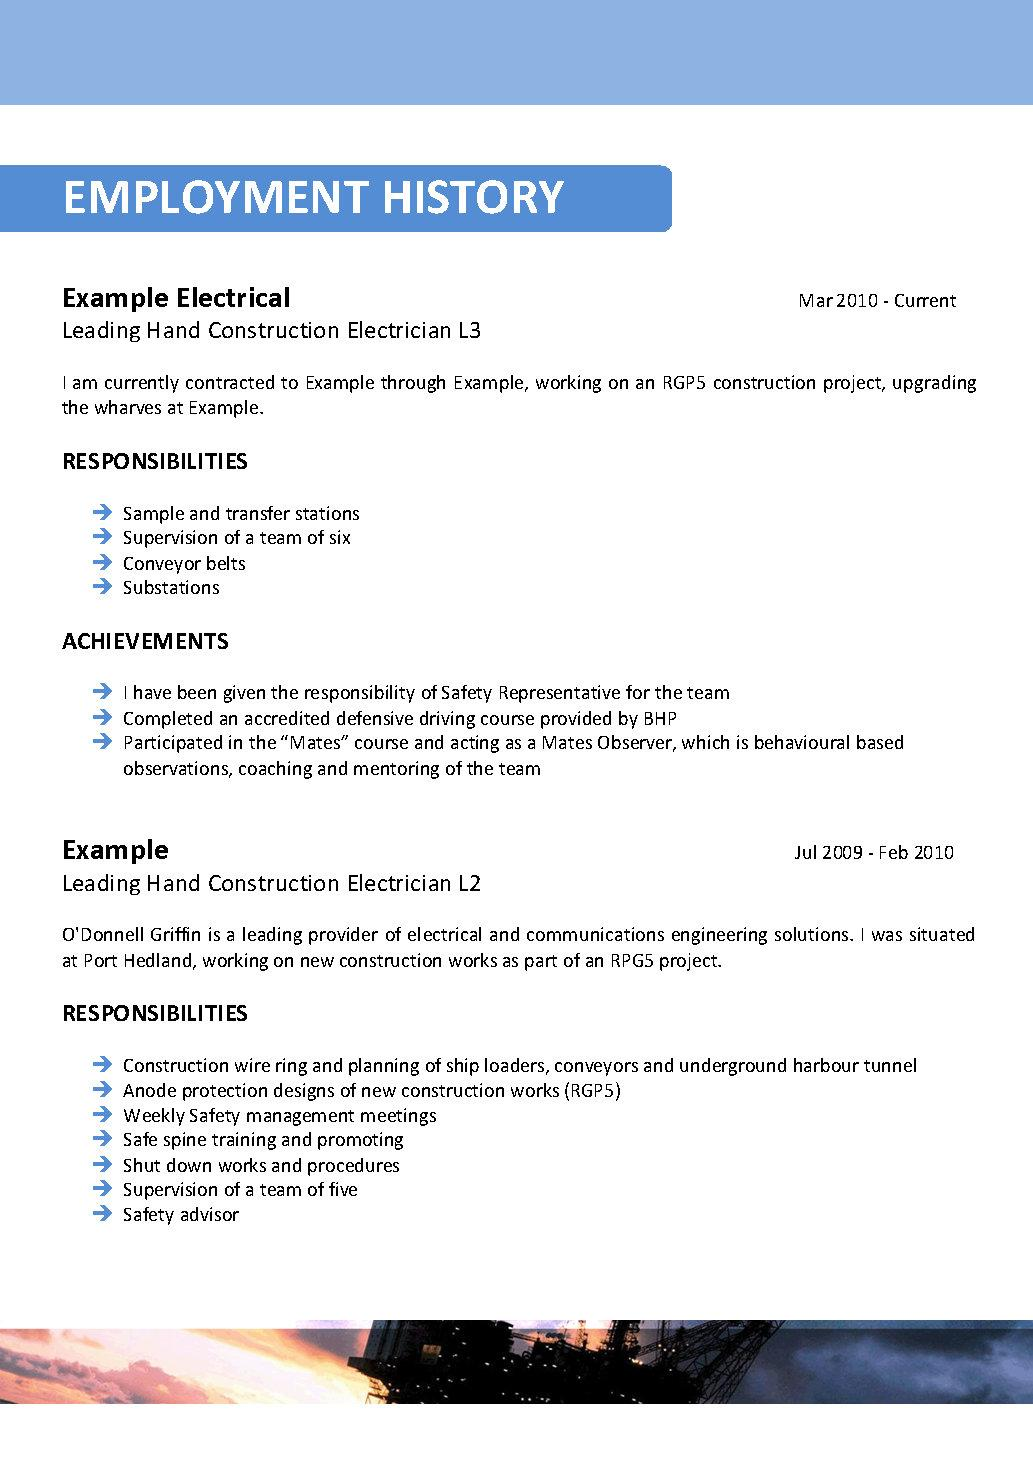 Mining Resume Services Australias Resume Writing Services Professional  Biotechnology Resume Samples And Templates Free Sample Resume